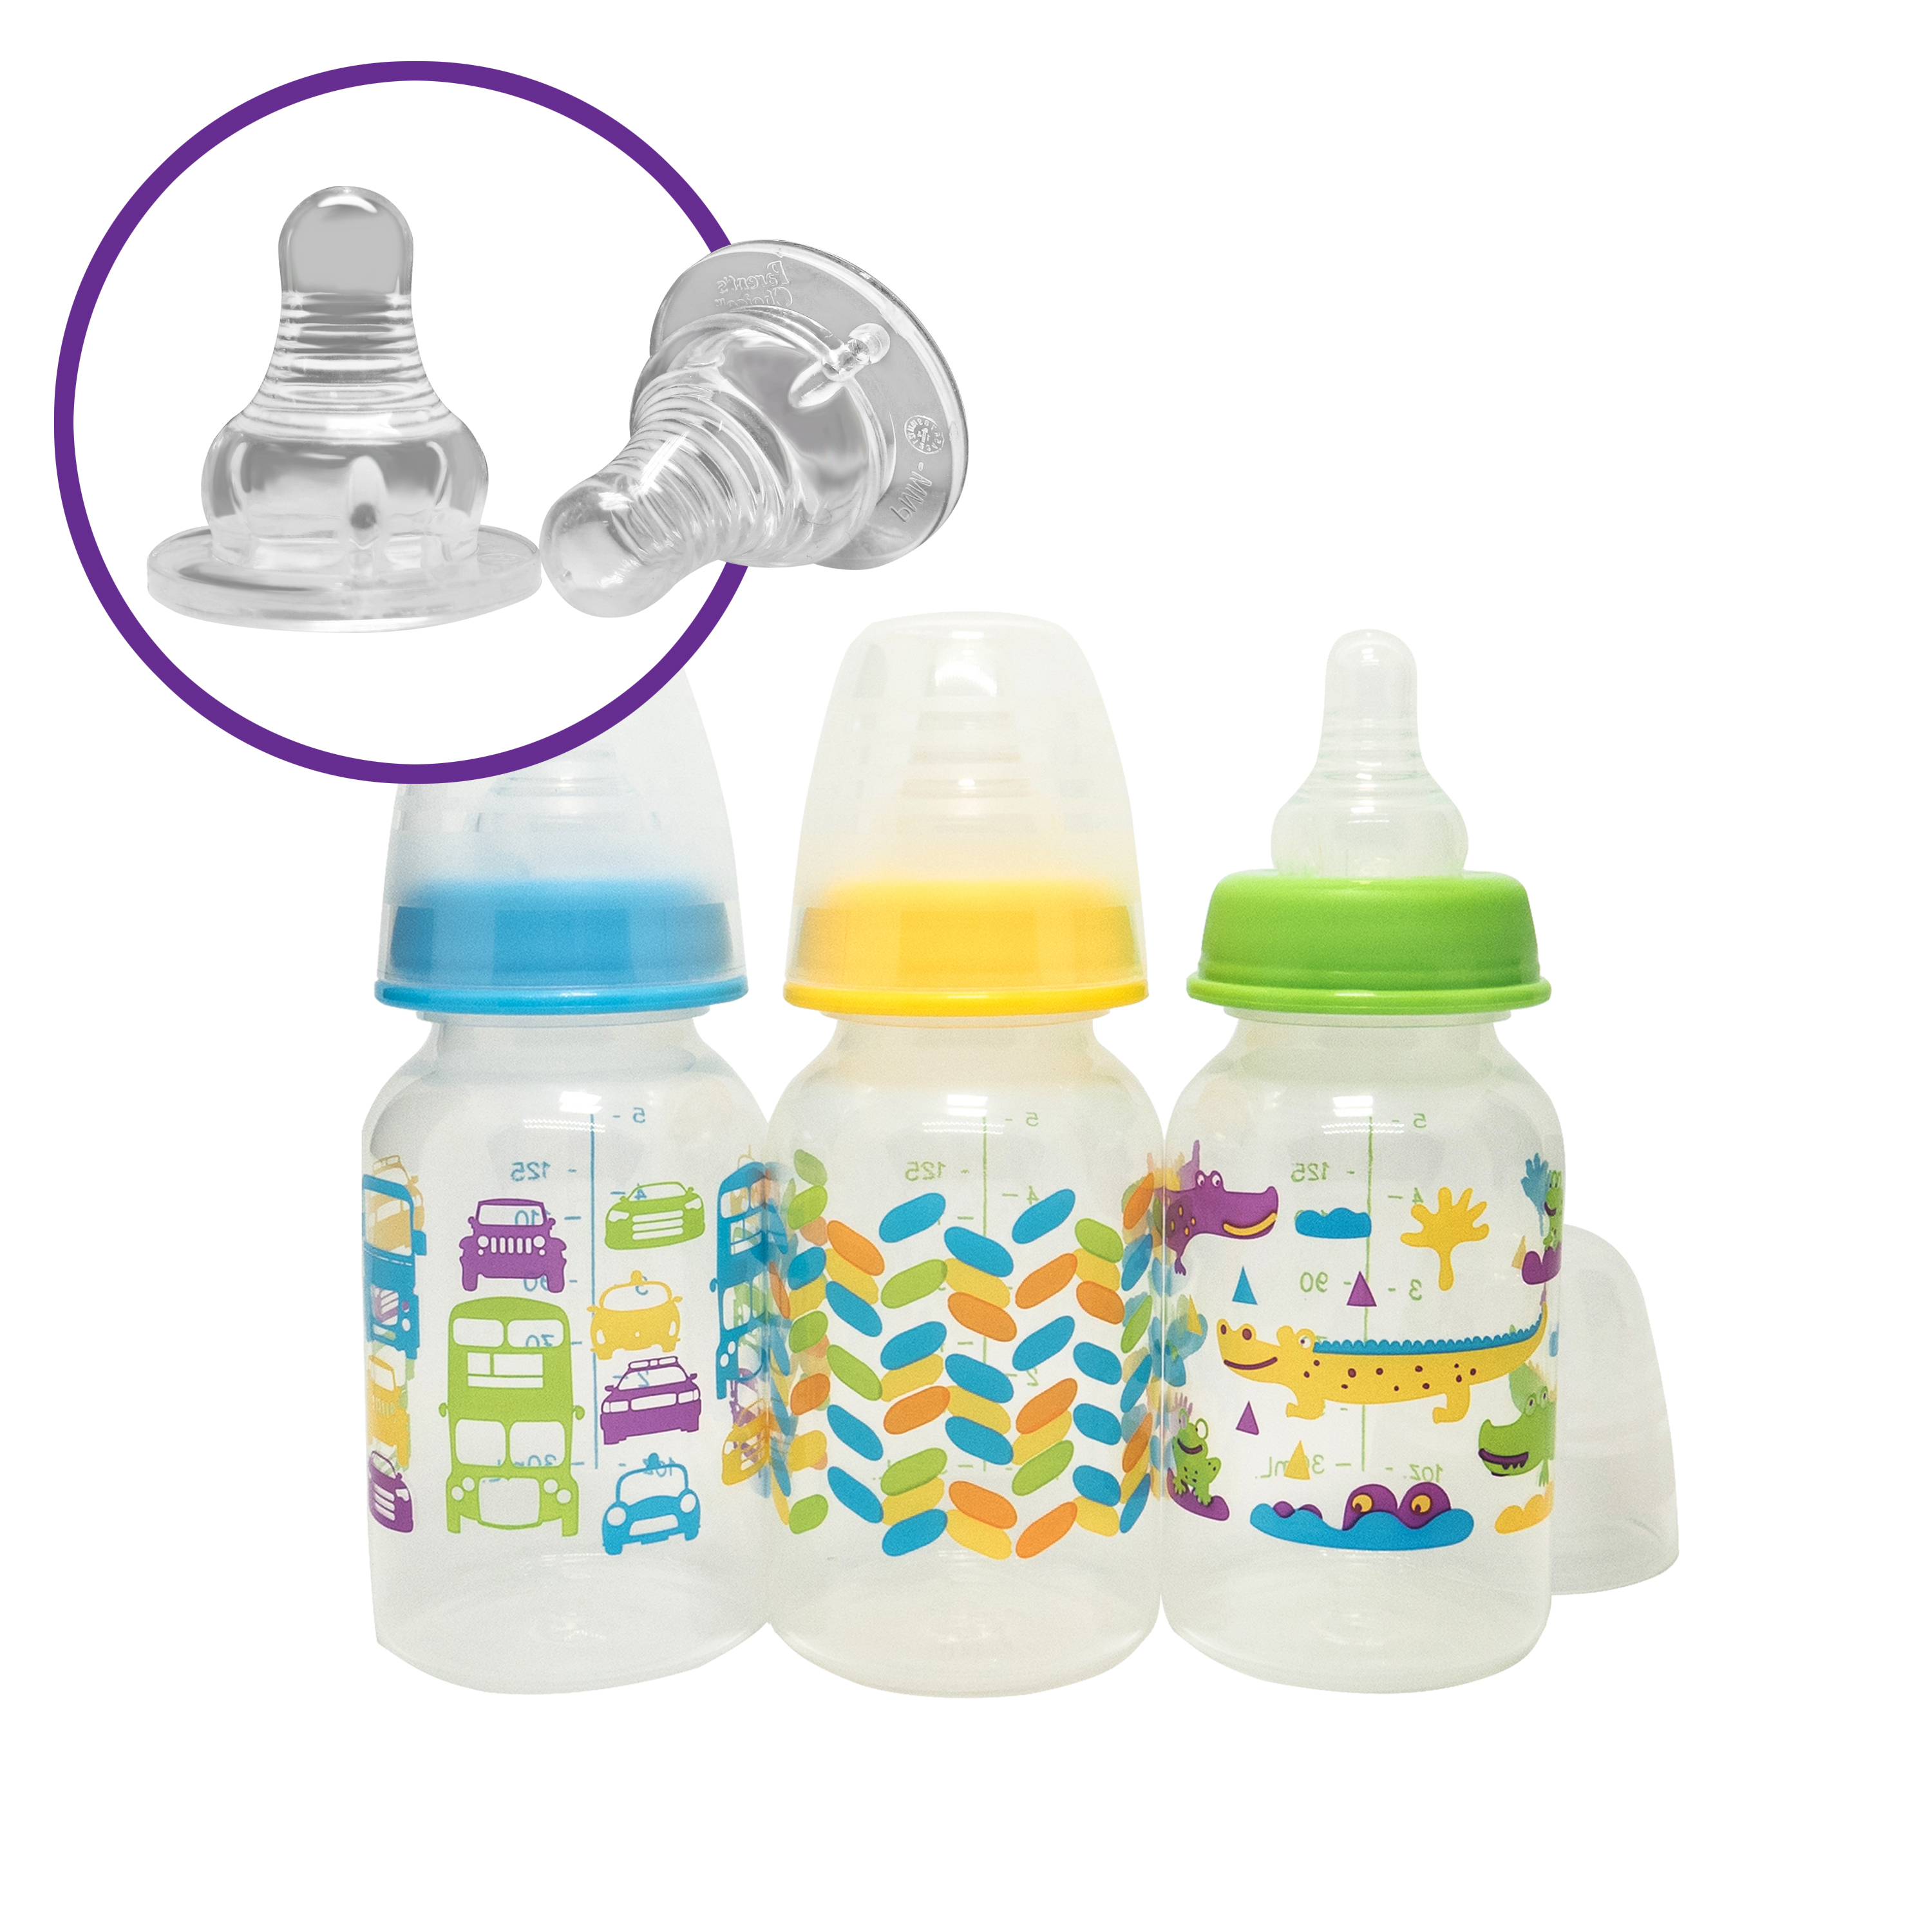 Parent's Choice BPA Free Baby Bottles - 5-oz